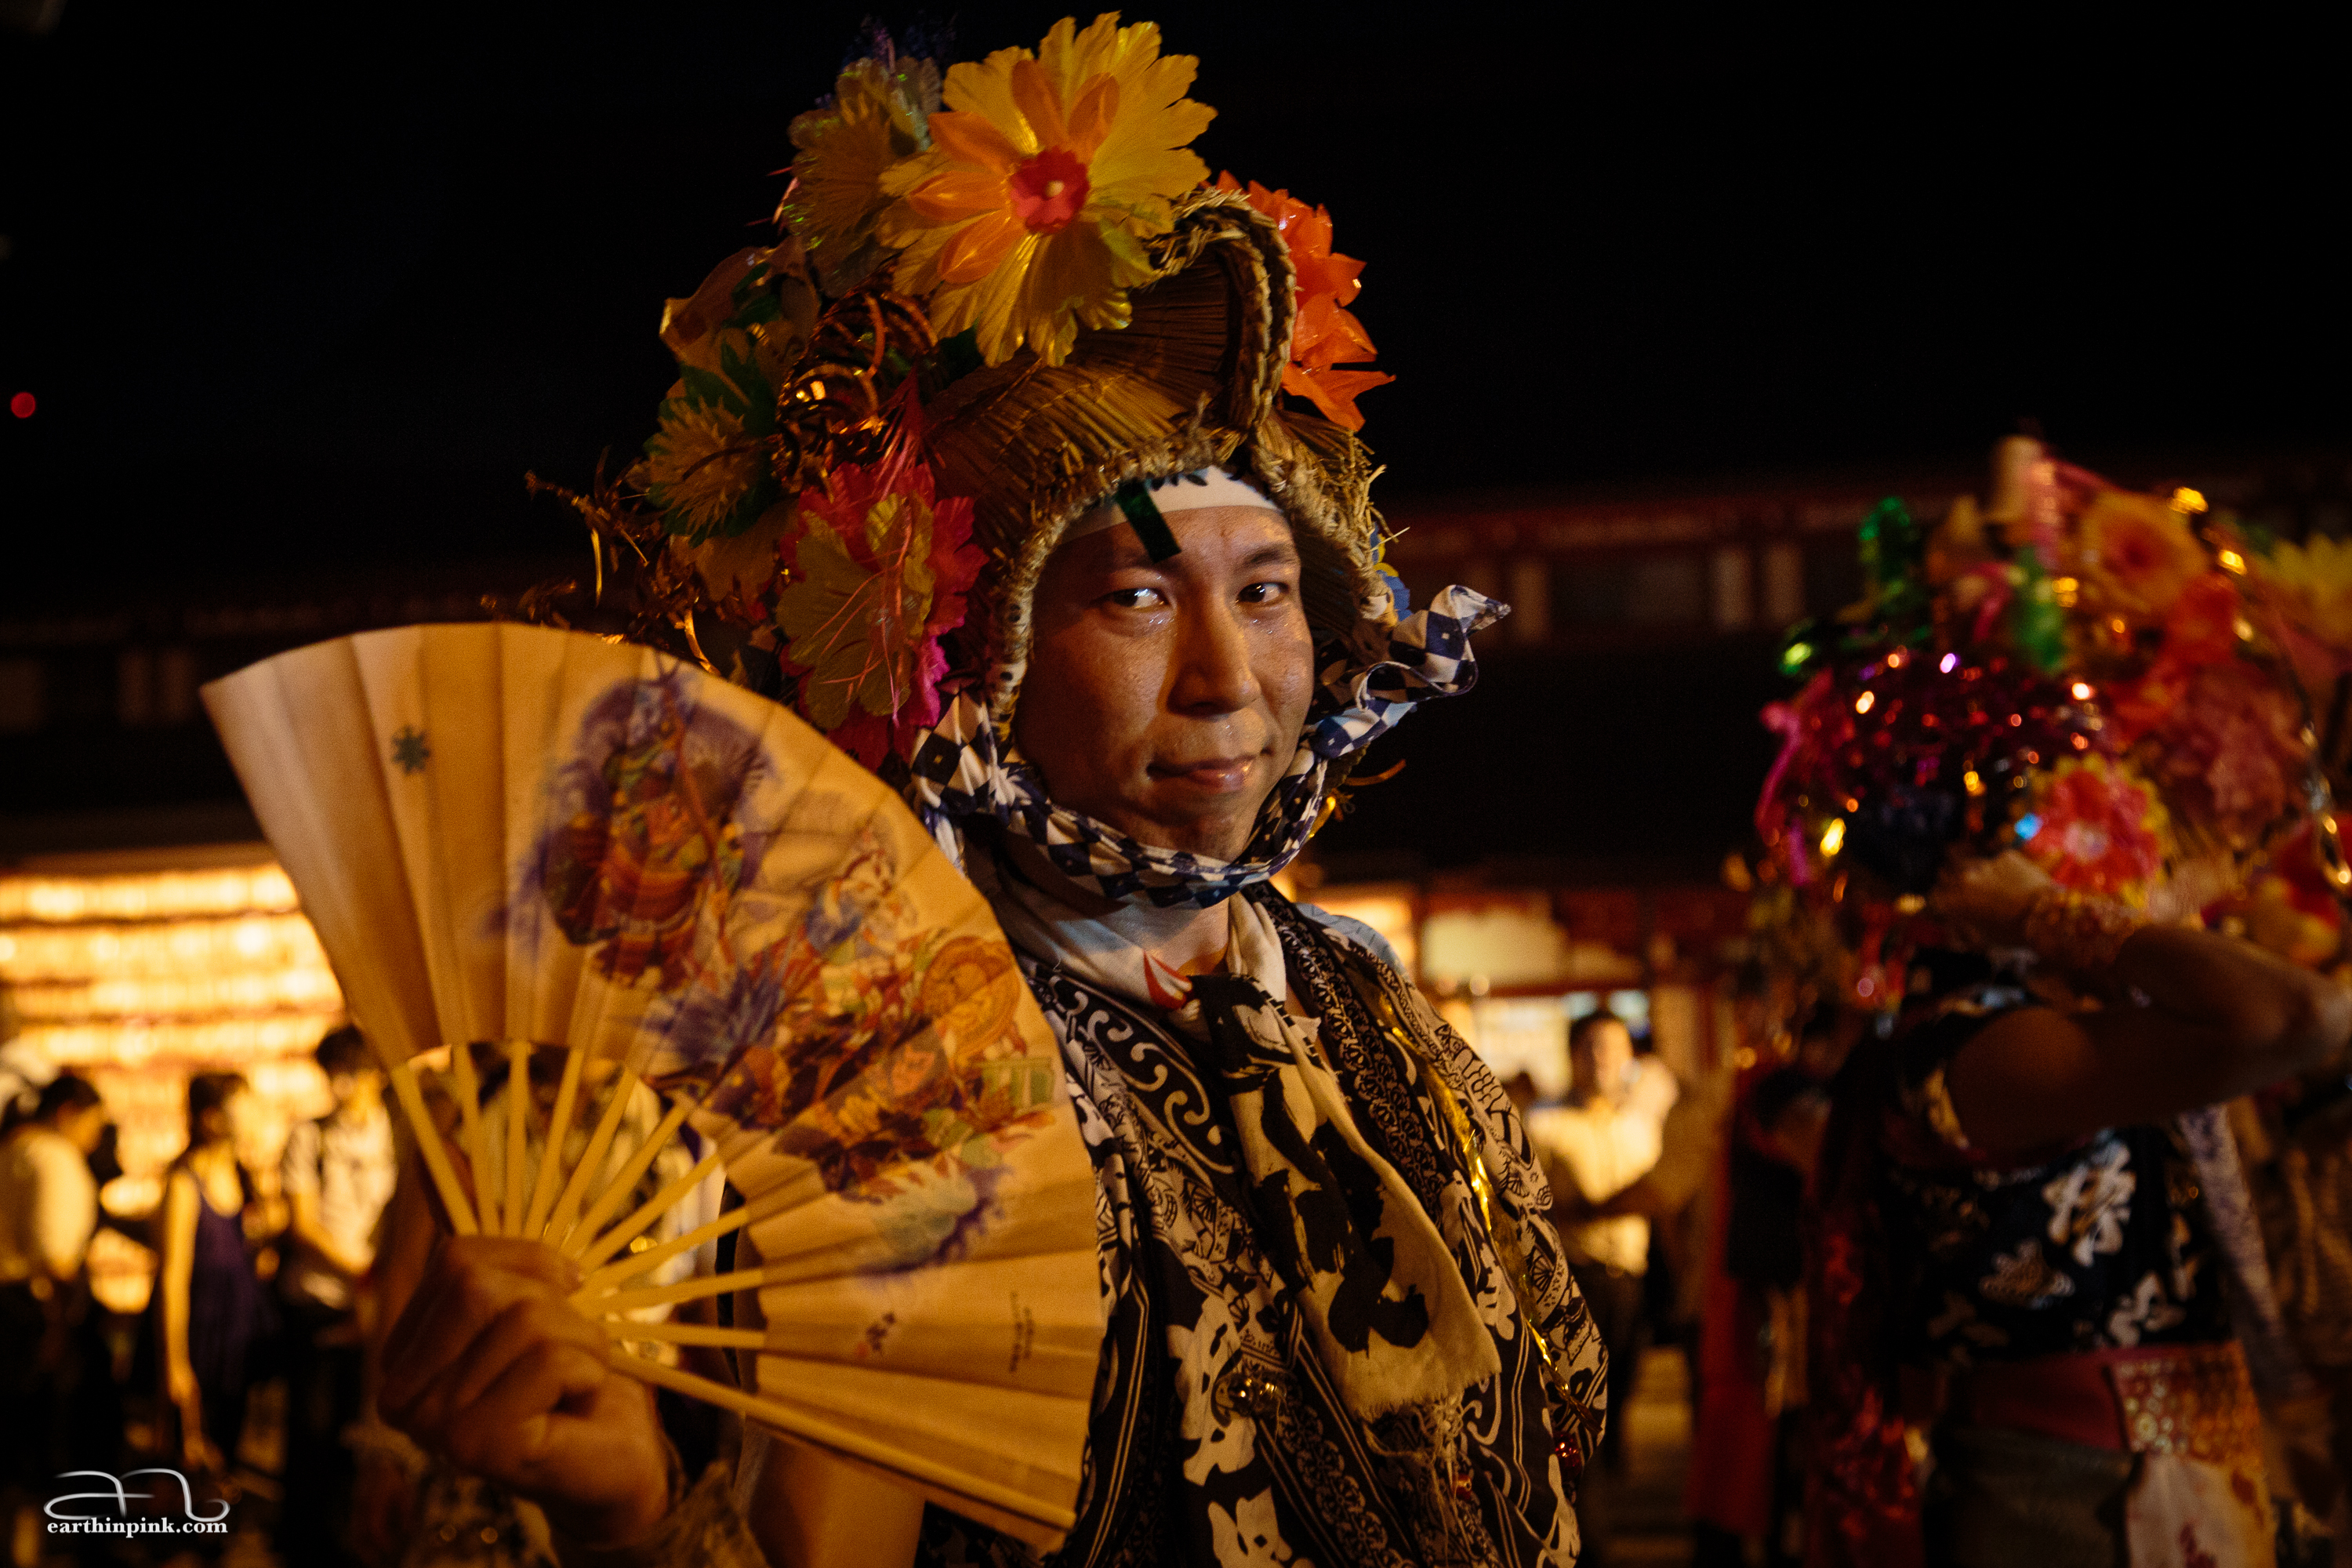 One of the participants in the festival's parade poses for the camera for just a split second.